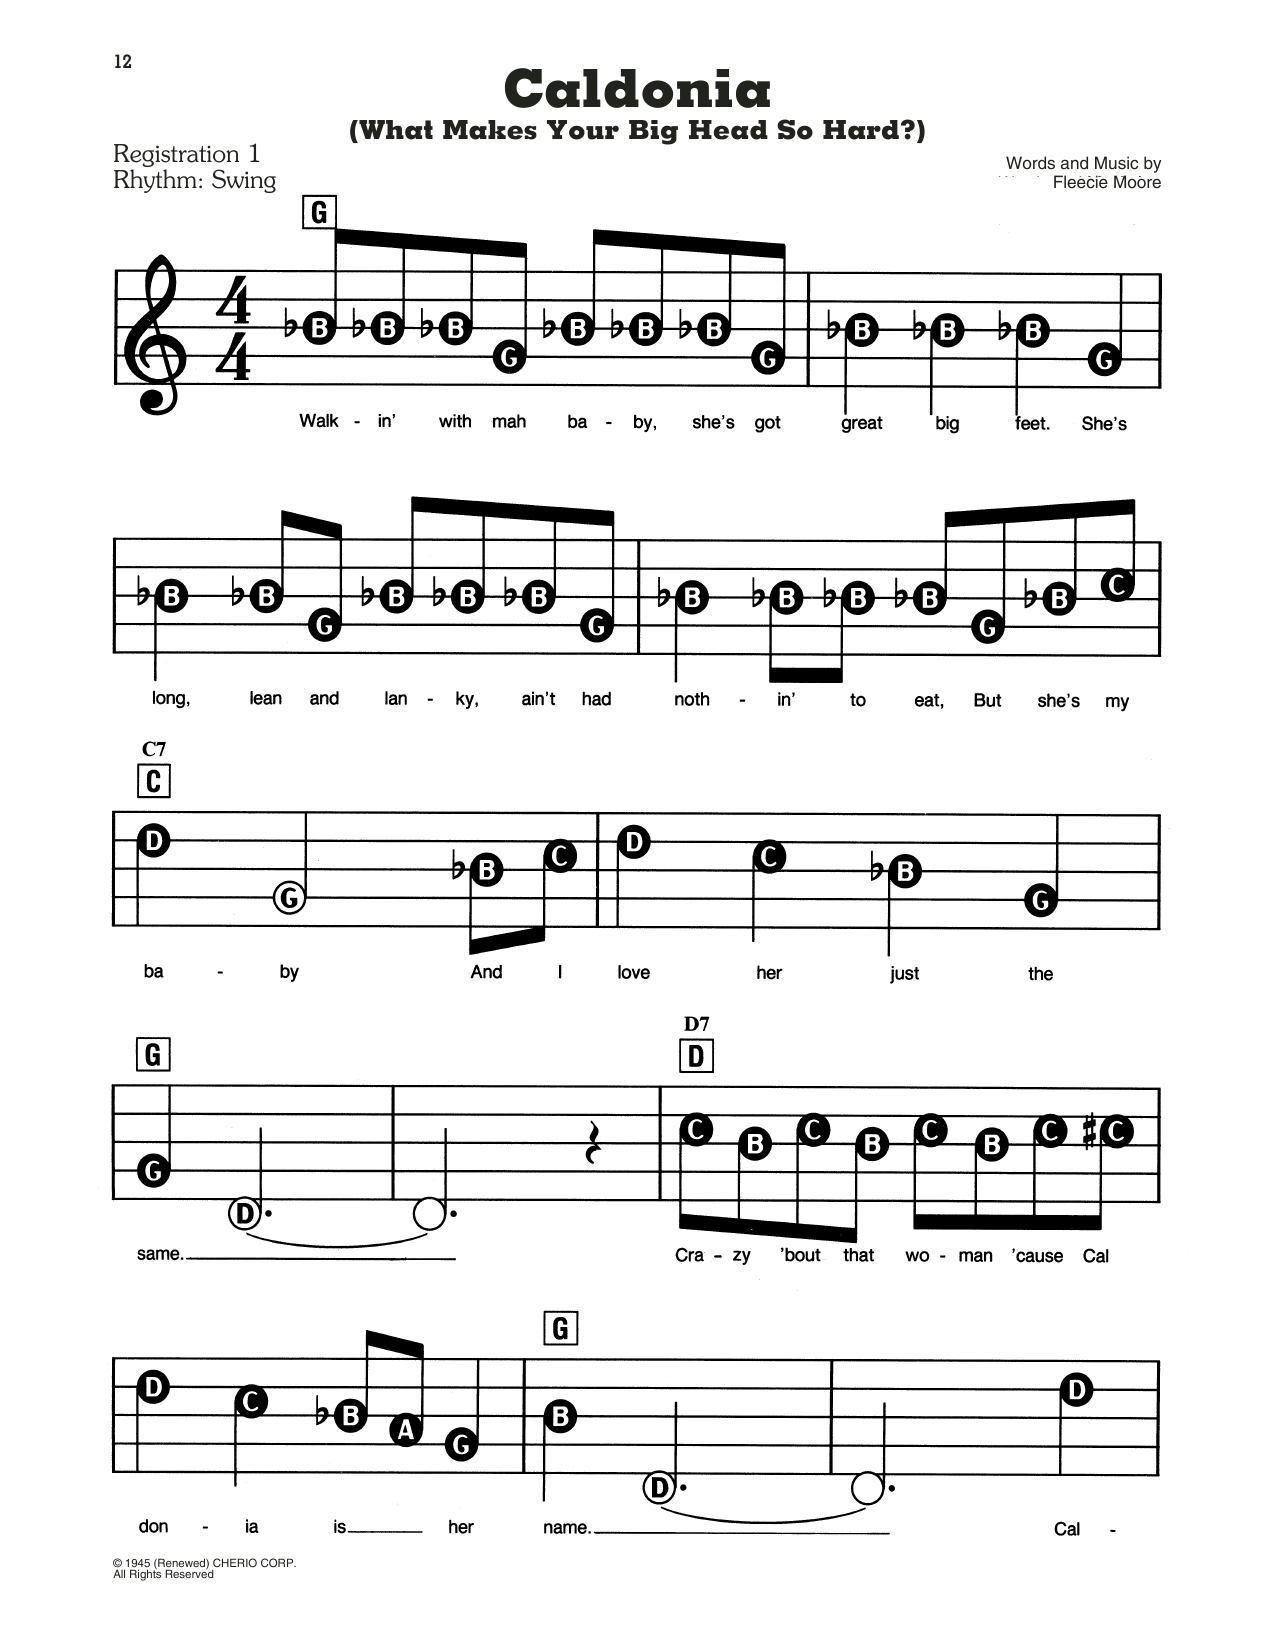 Caldonia (What Makes Your Big Head So Hard?) Sheet Music